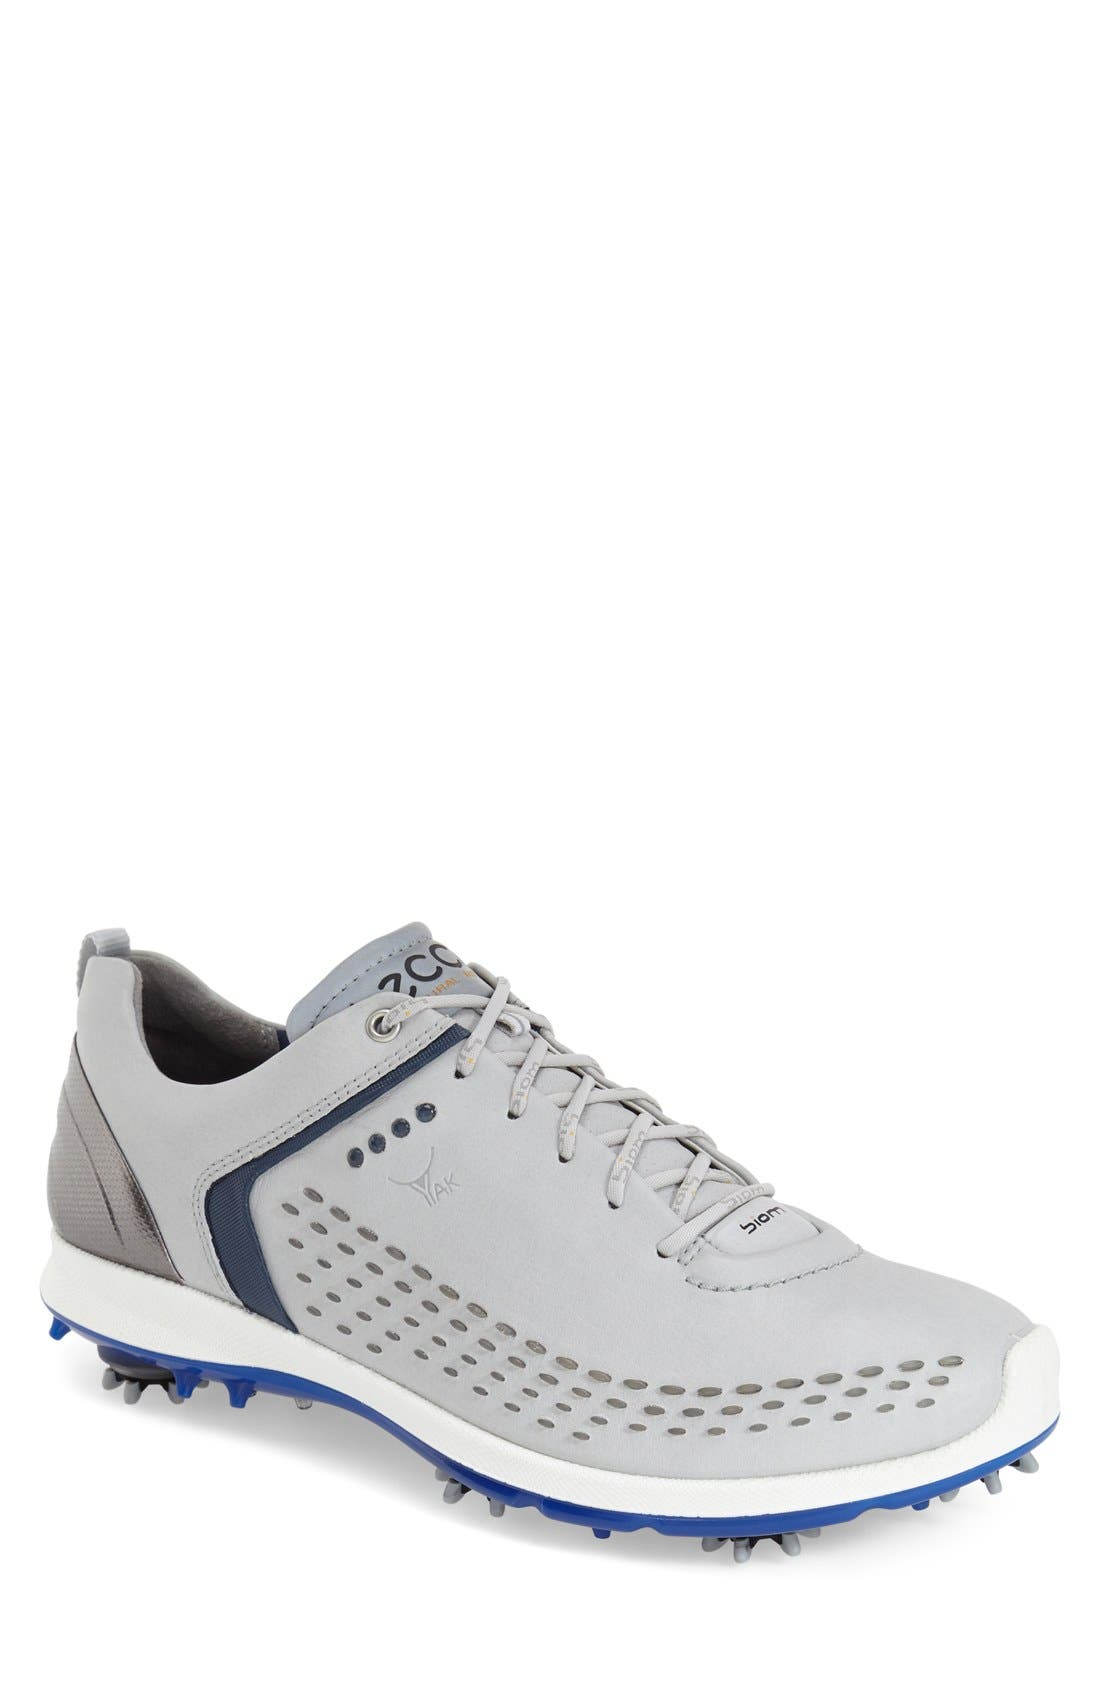 ECCO BIOM Hydromax Waterproof Golf Shoe (Men)